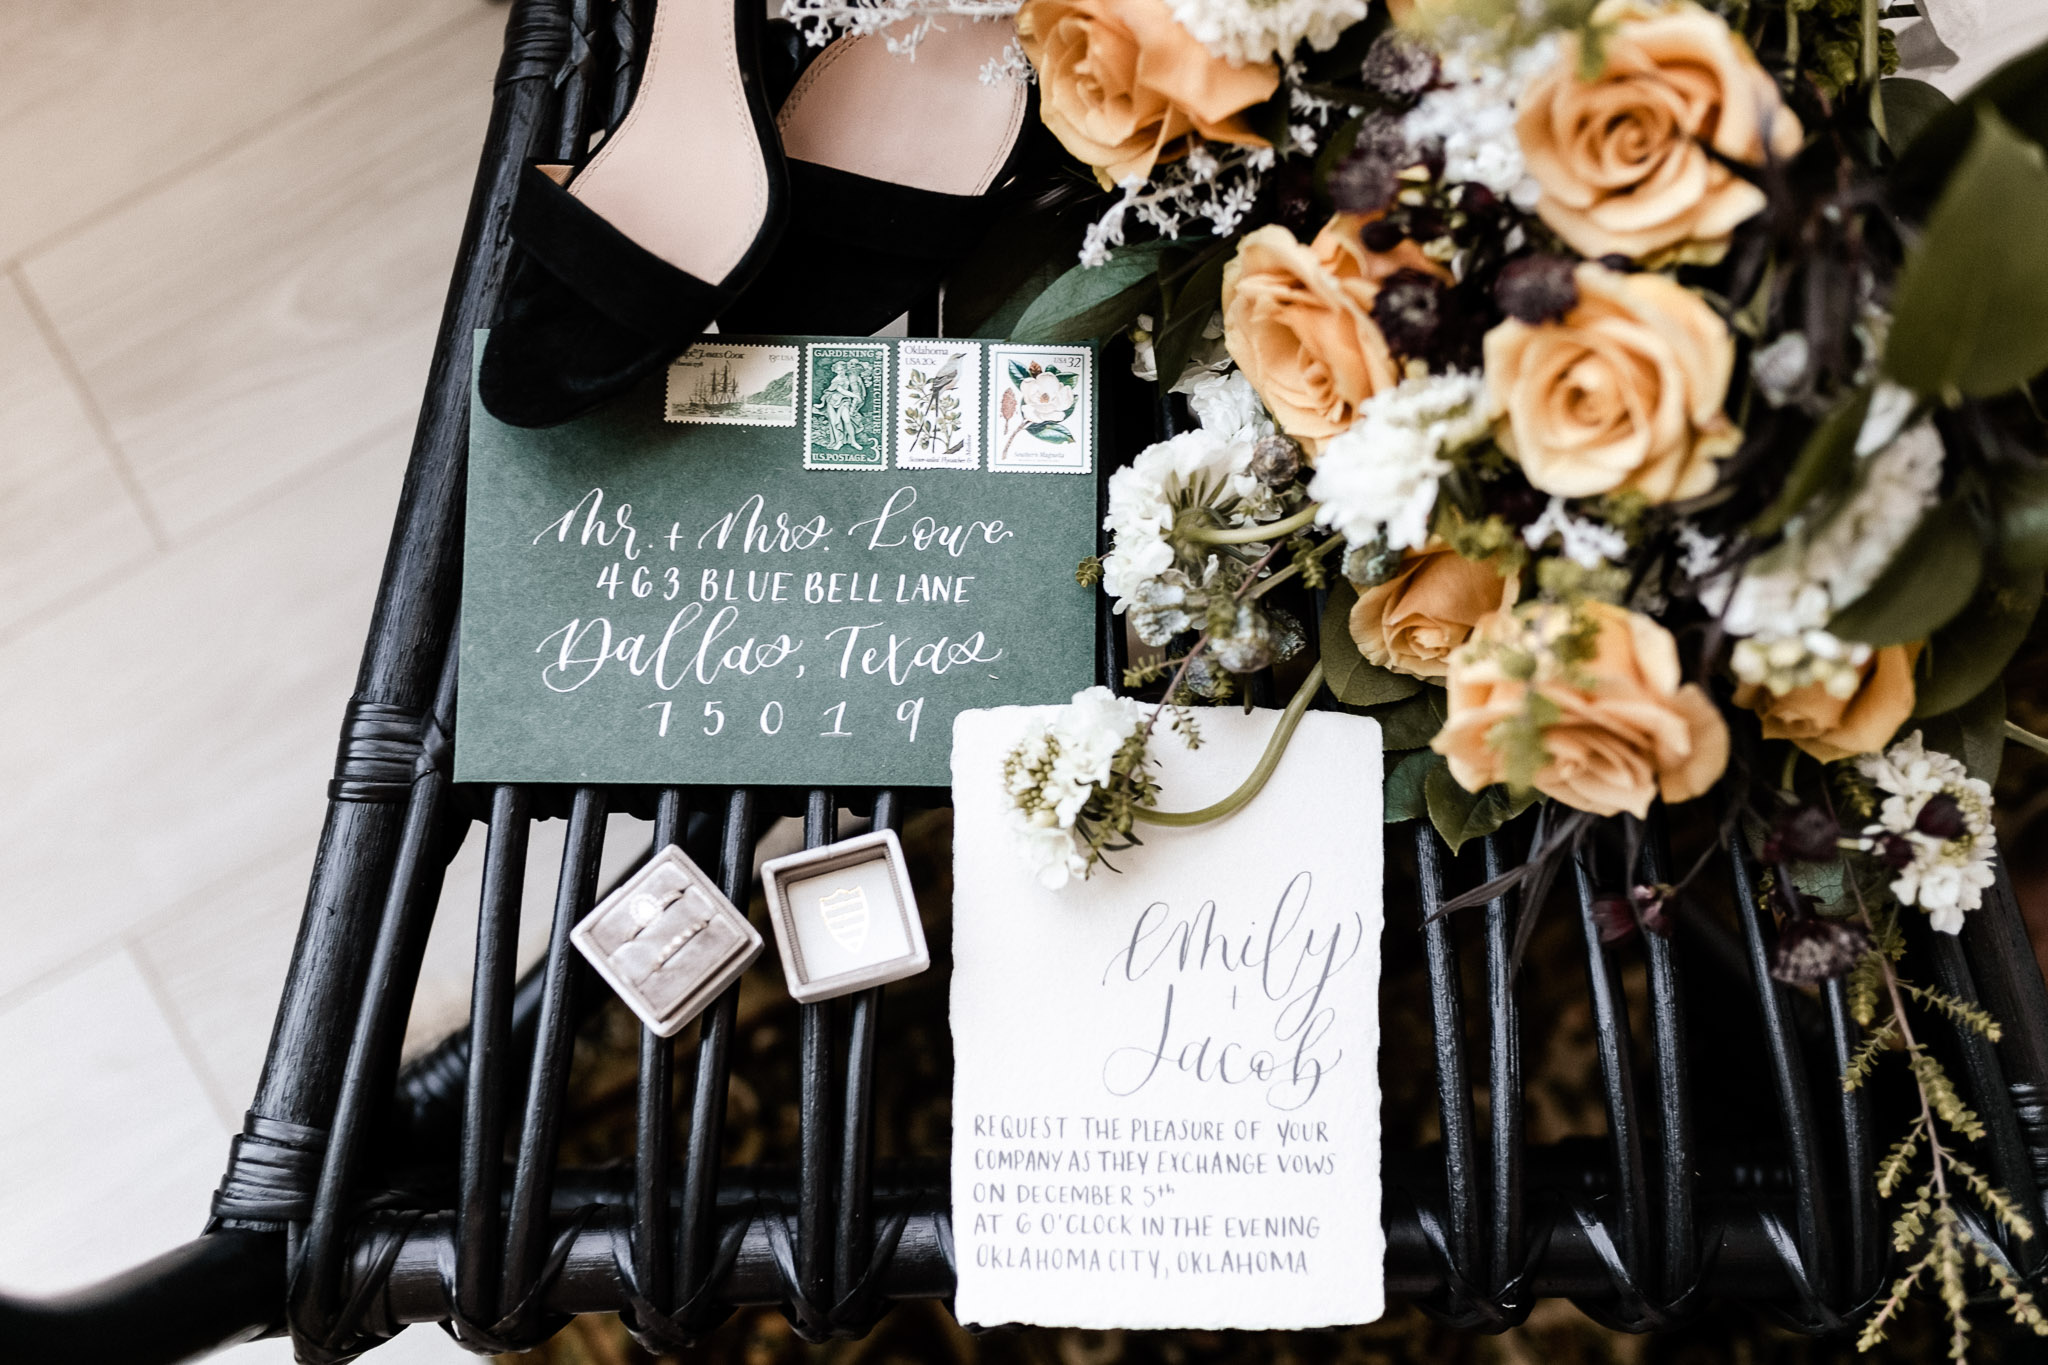 Eclectic Glam Wedding Inspiration KHP-1-2.JPG